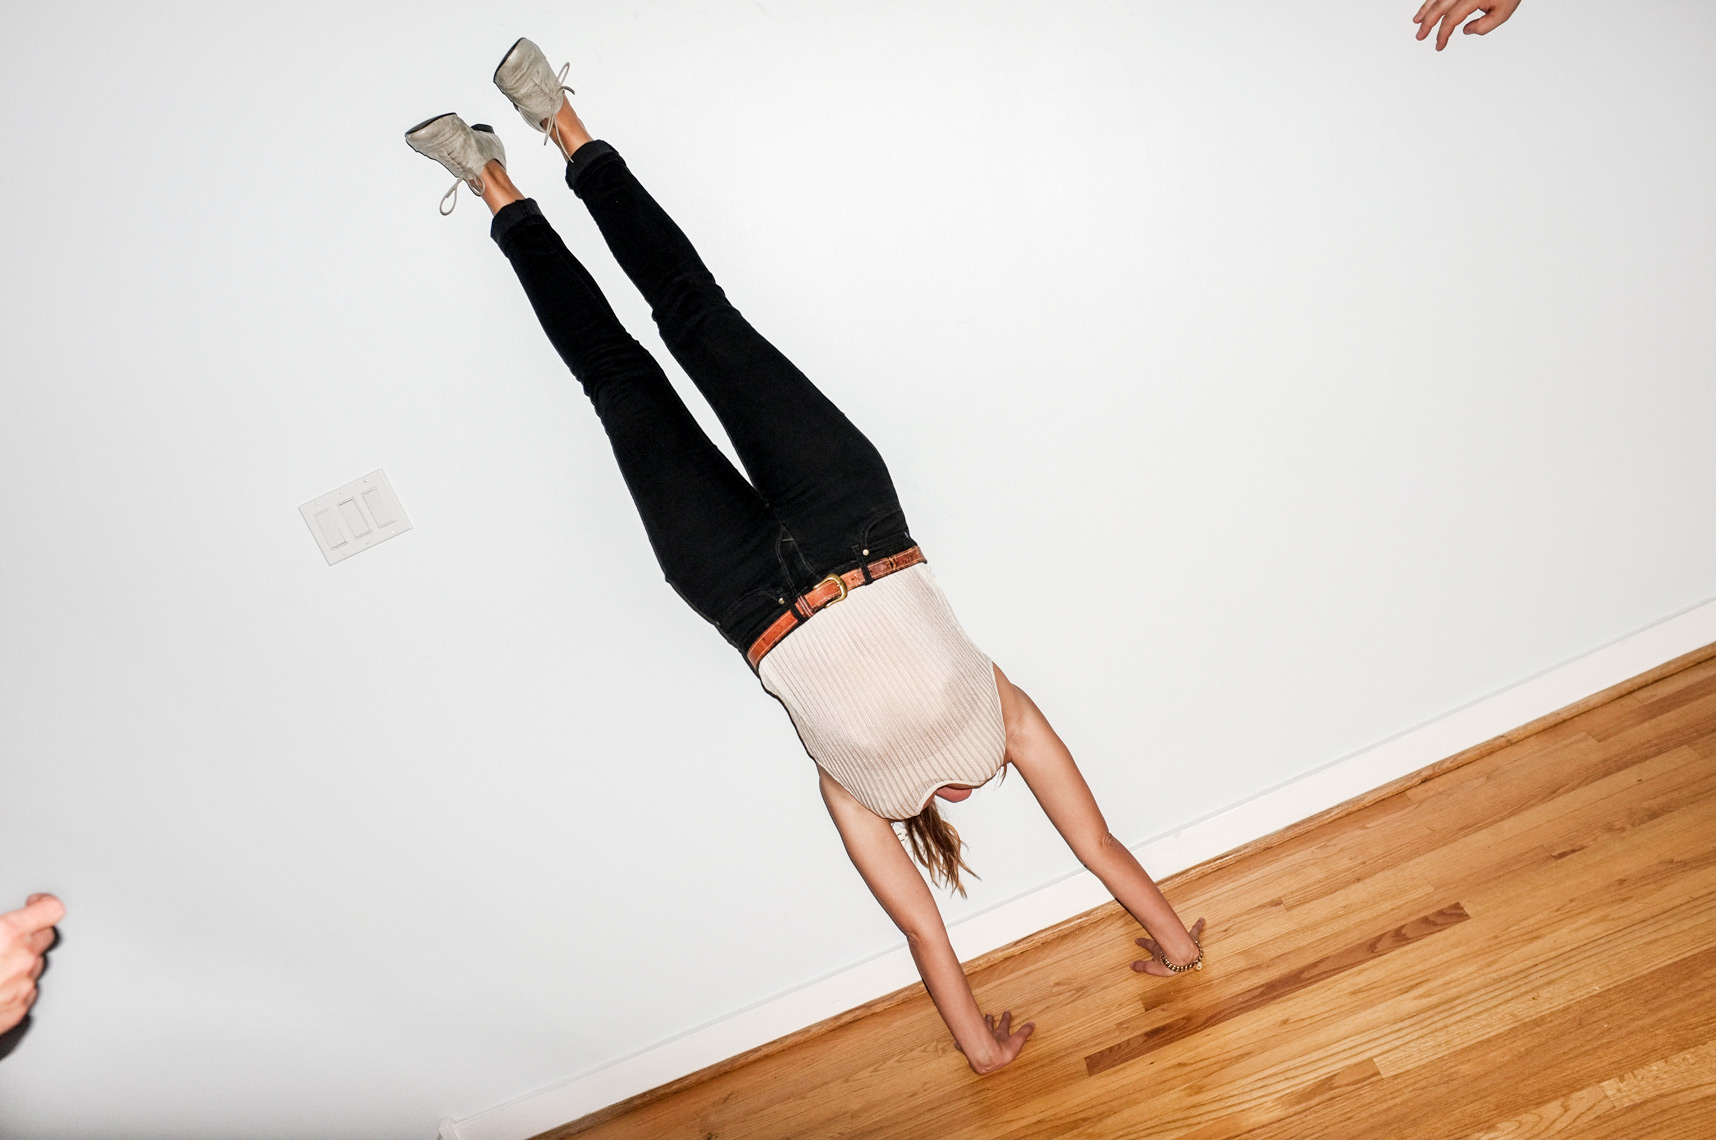 brian-sorg-life-handstand_DSF7863